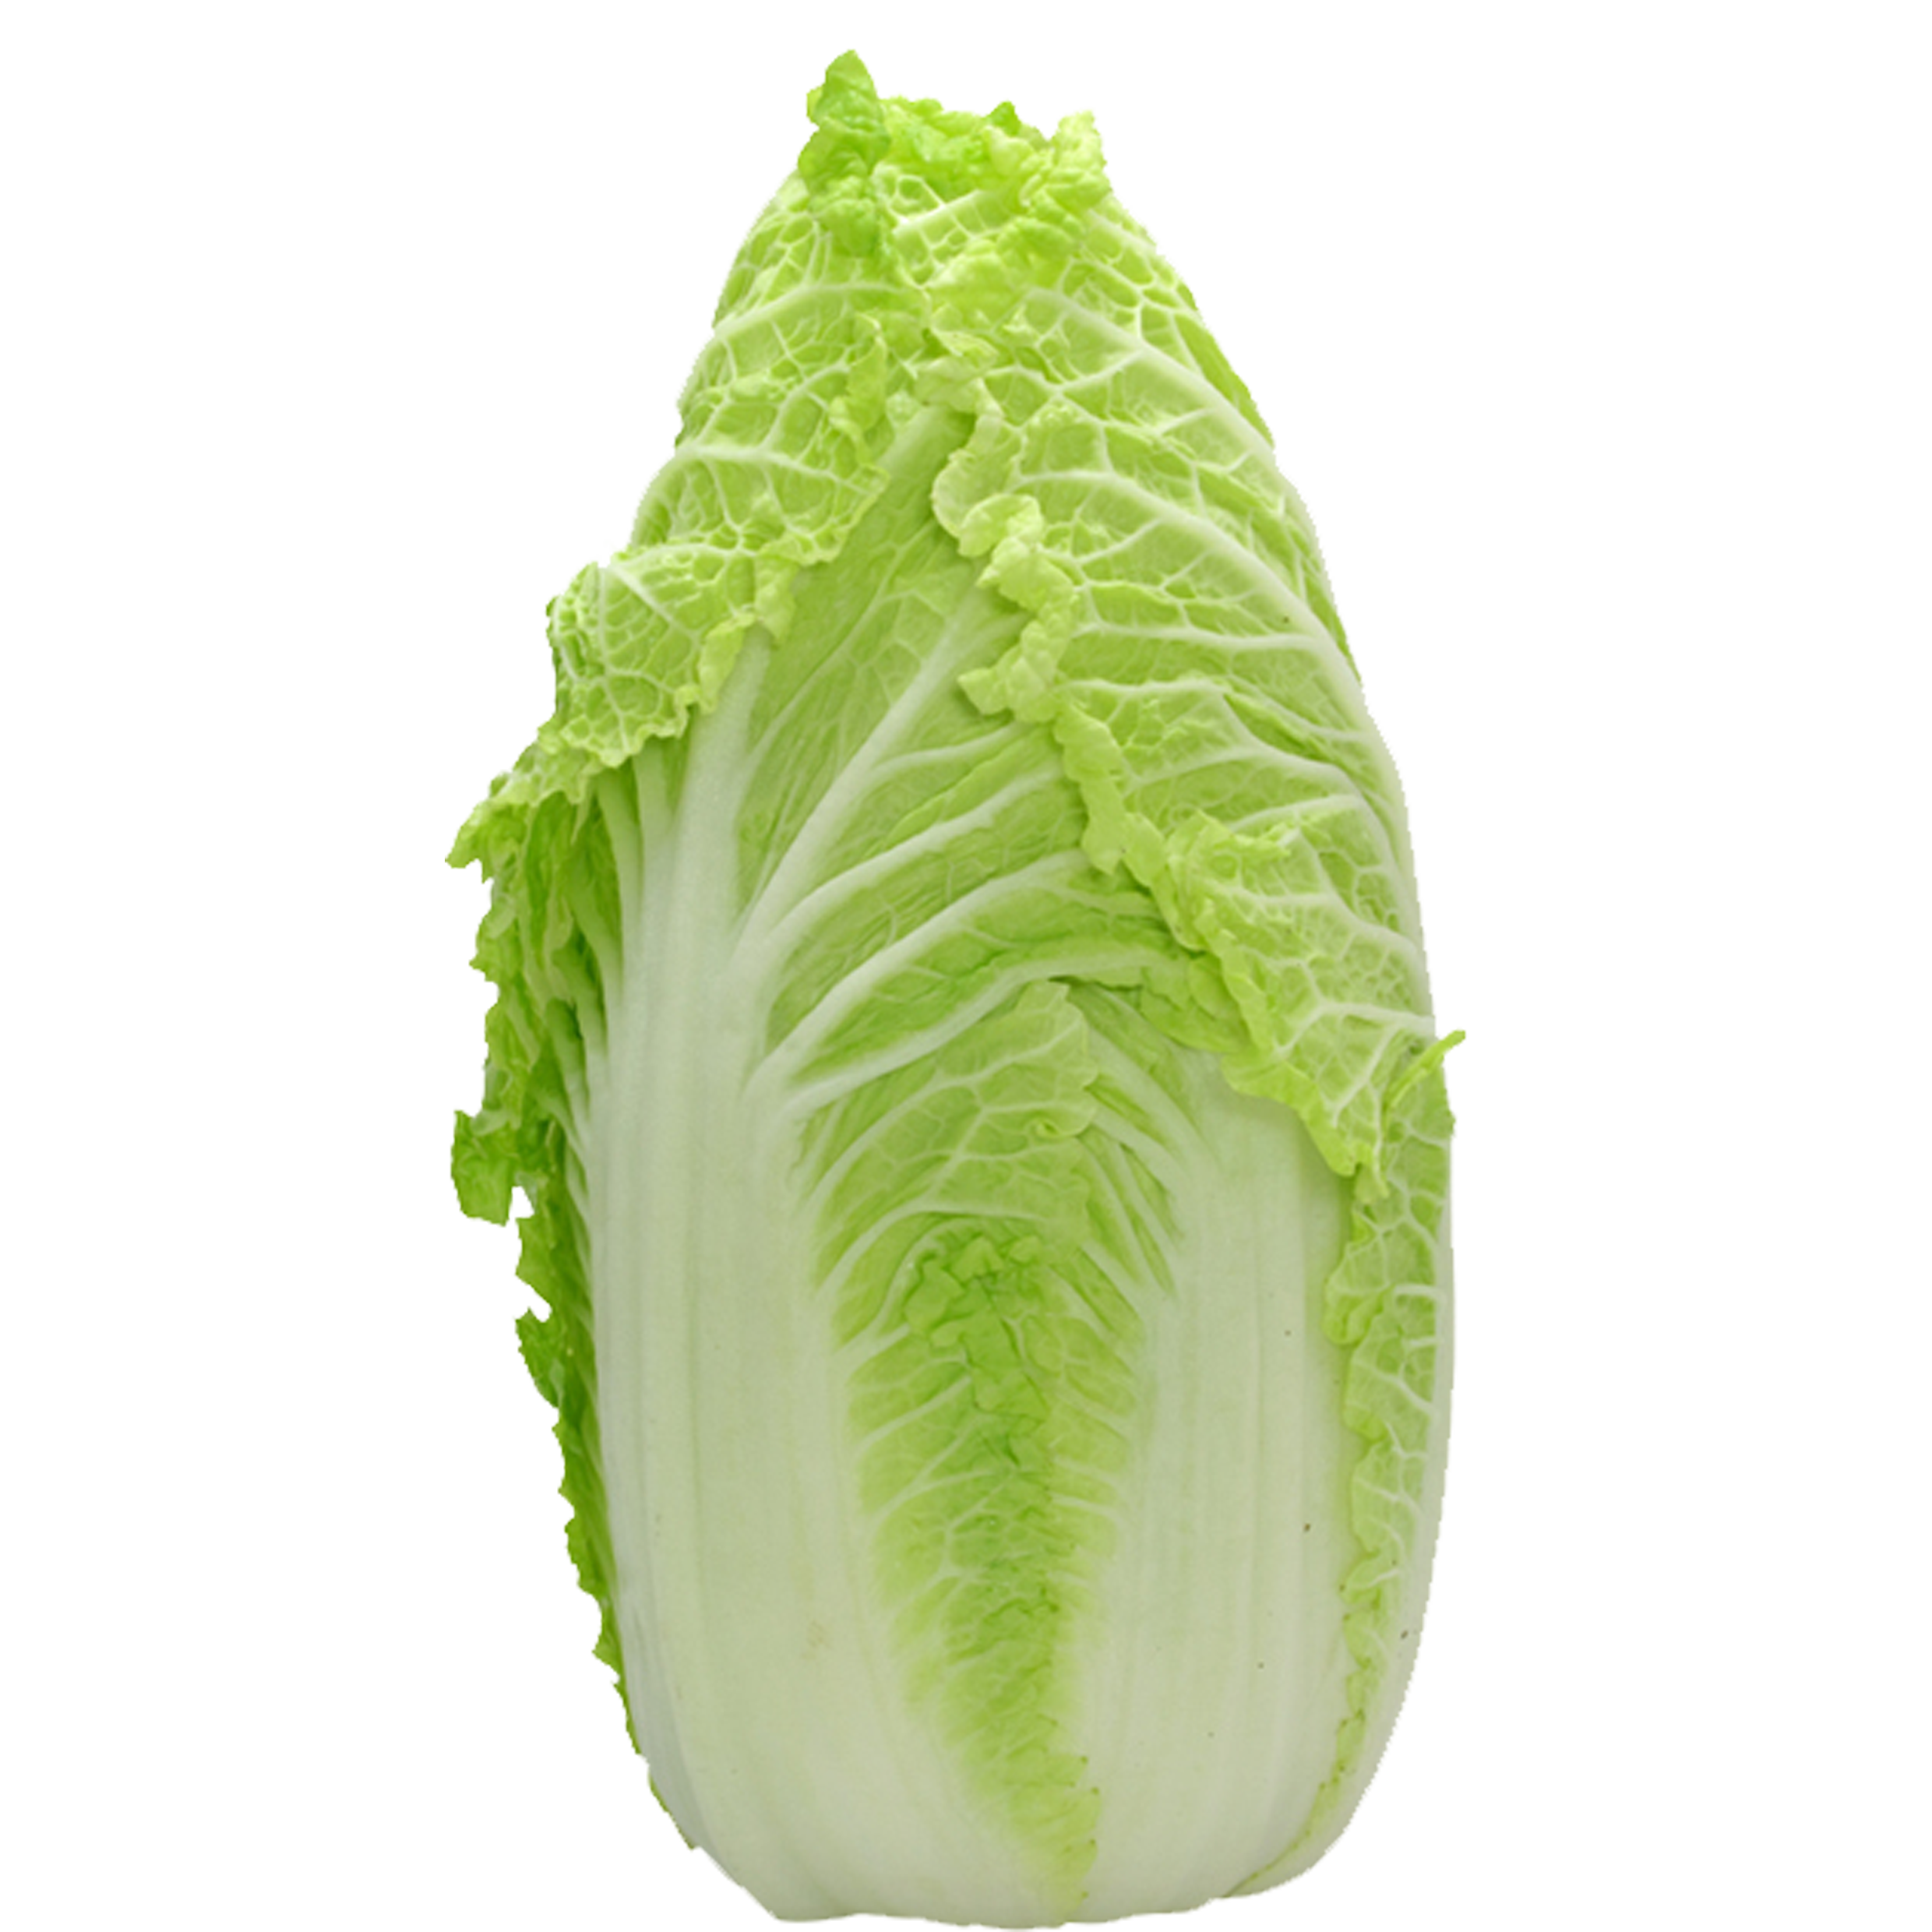 Napa cabbage png. Chinese leaf lettuce vegetable